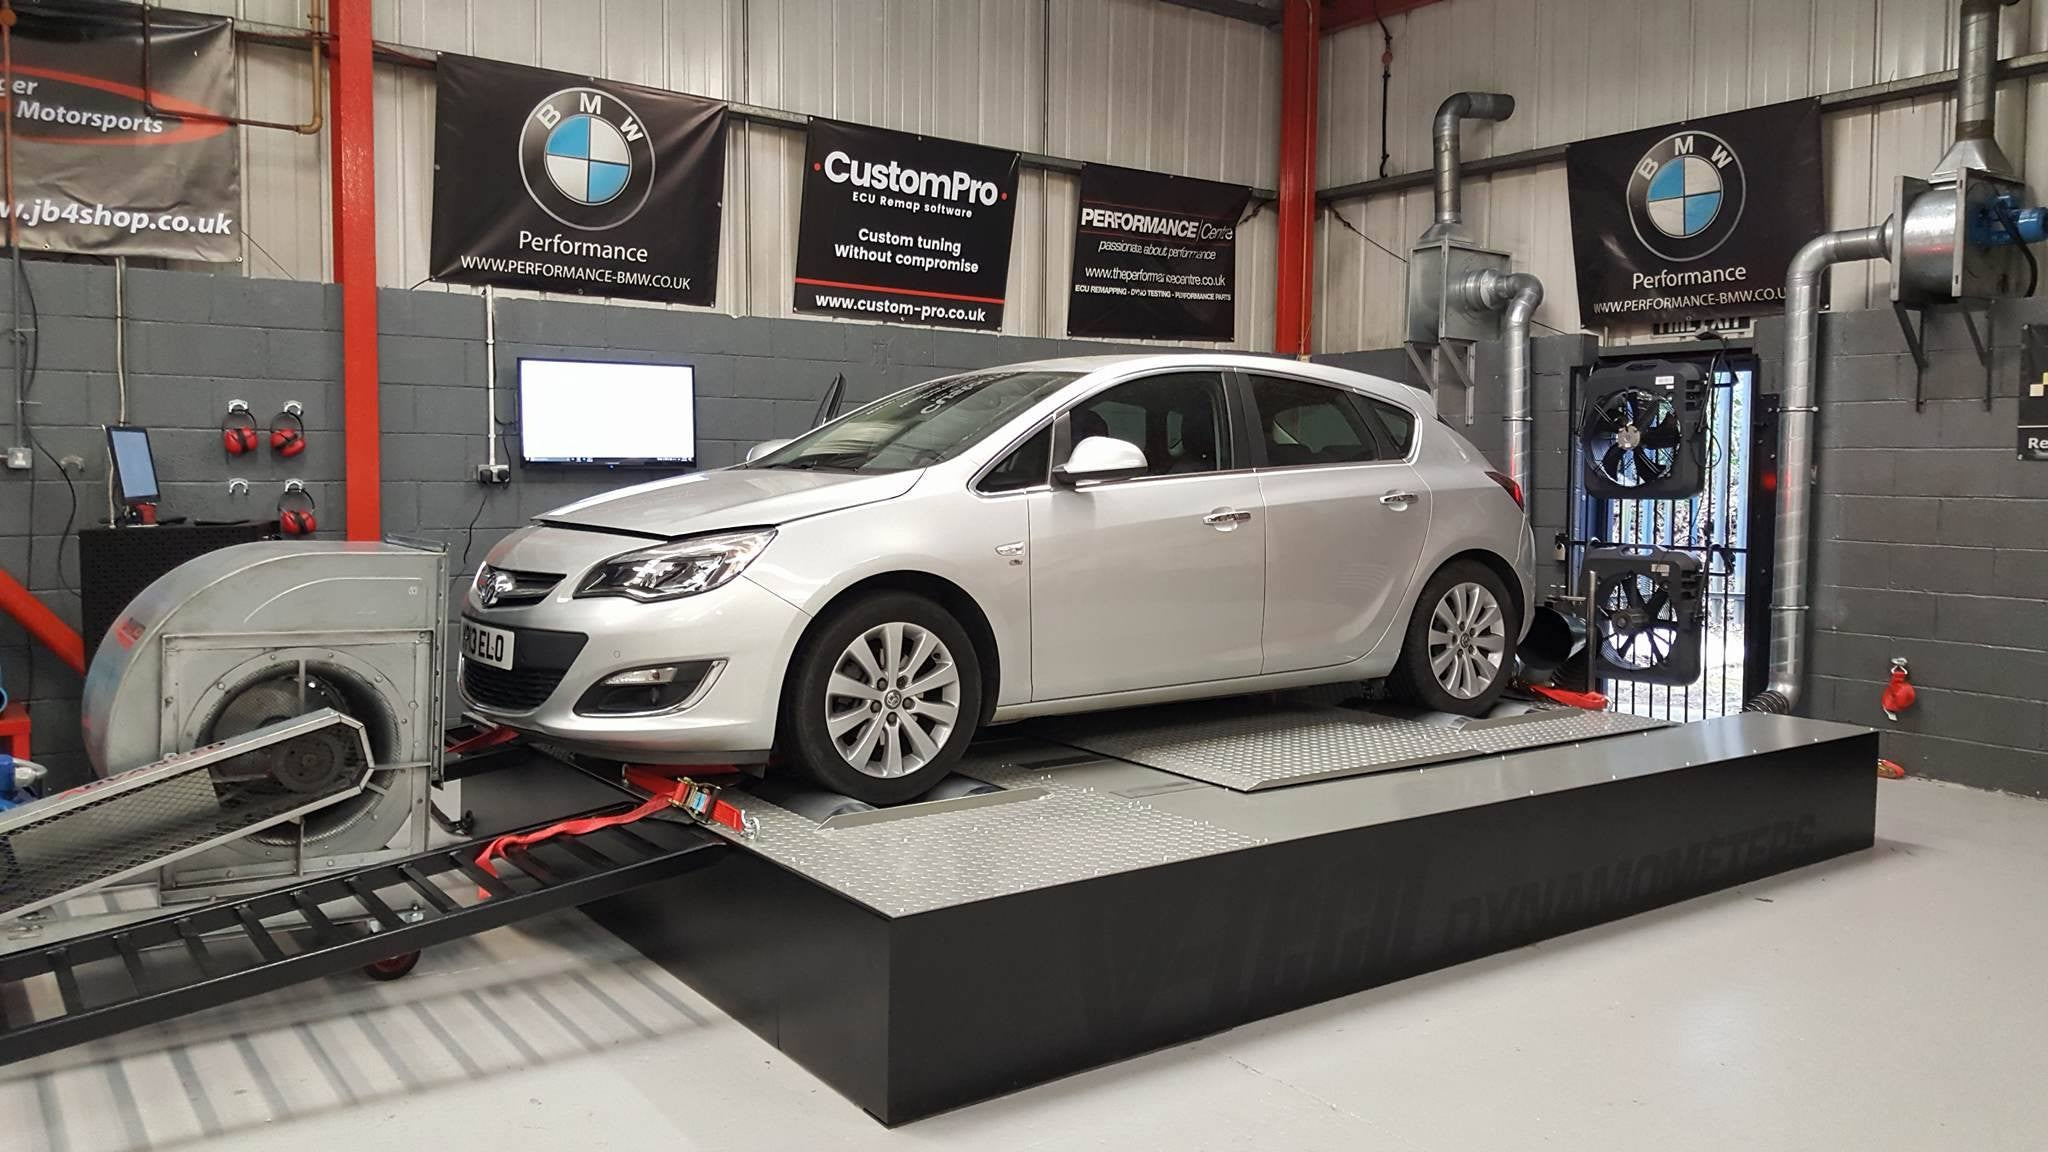 Vauxhall Astra 2.0 CDTI - CustomPro remap software